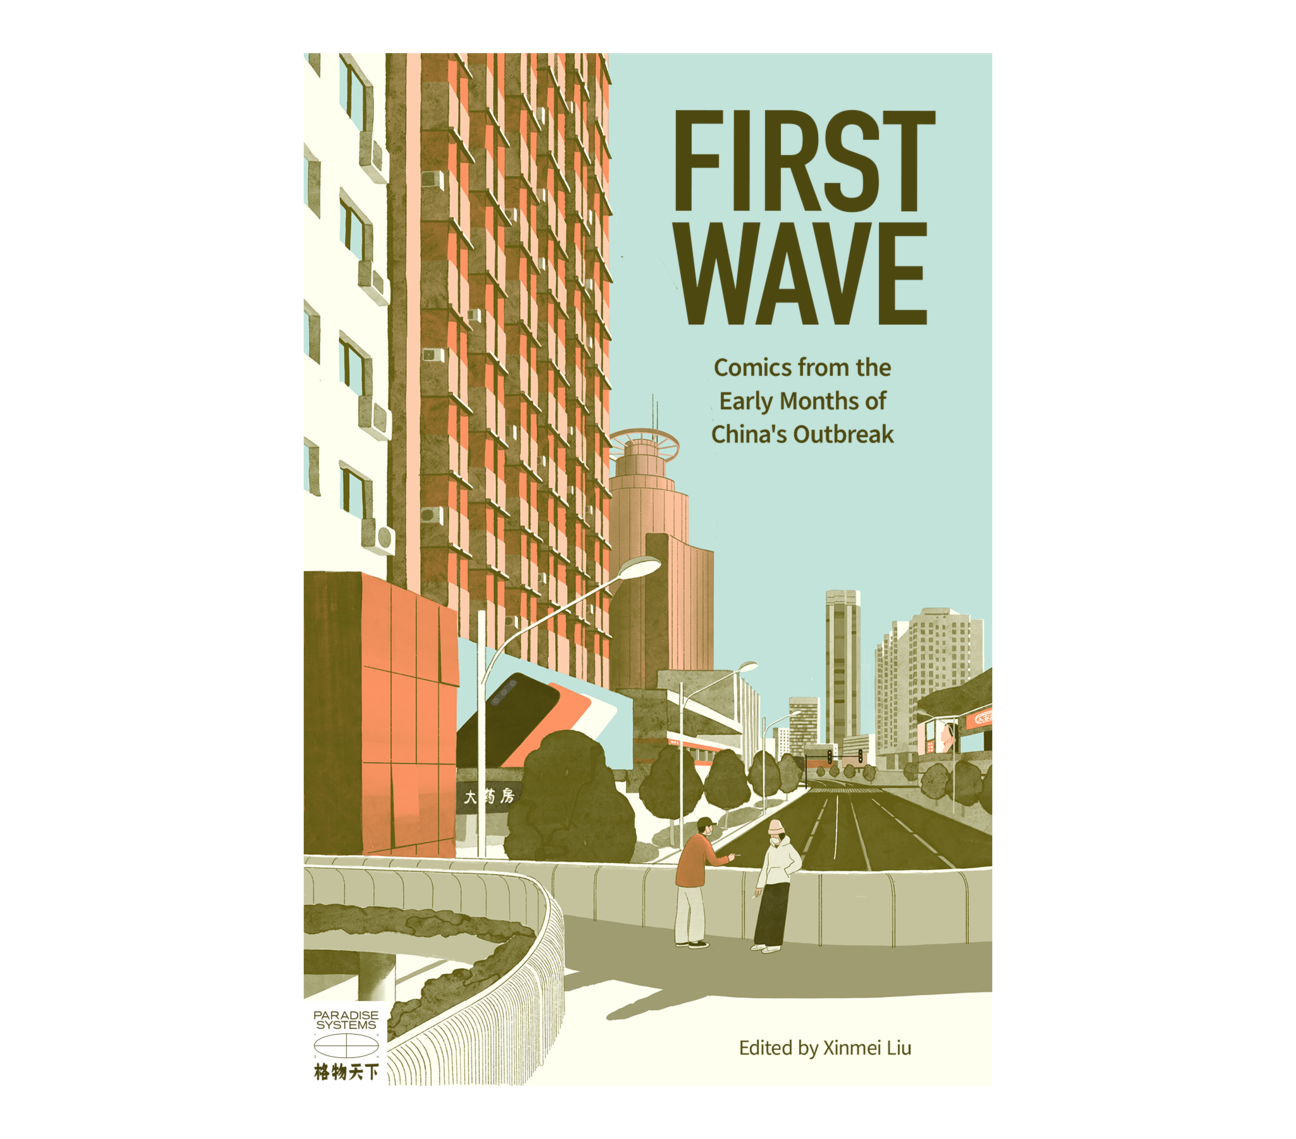 A cover image of First Wave: Comics from the Early Months of China's Outbreak